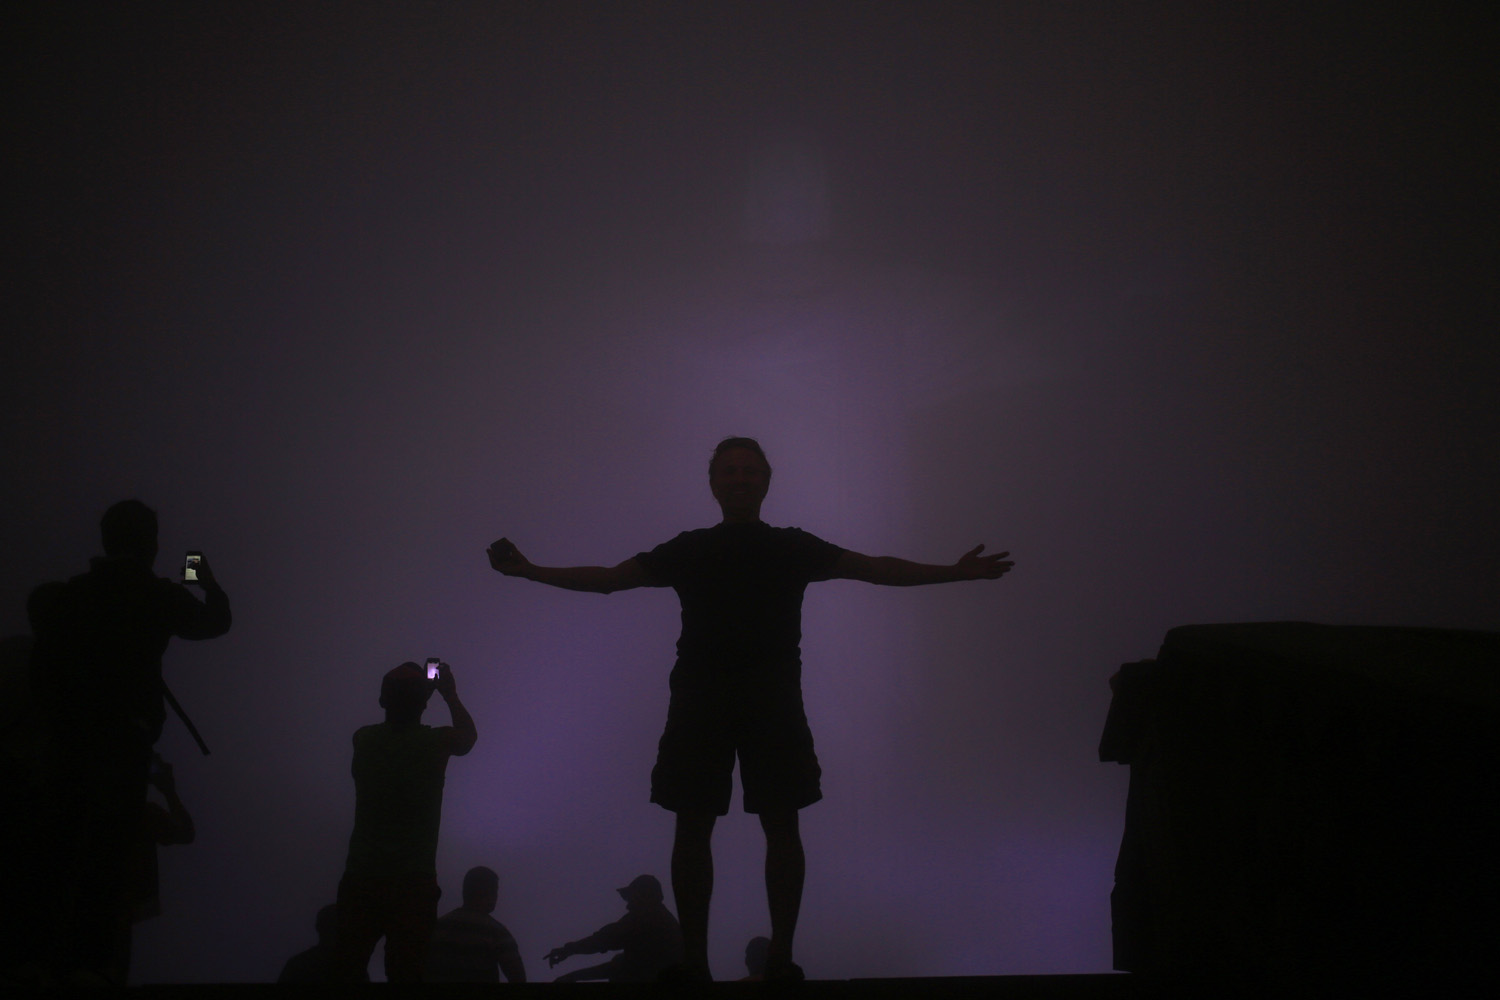 Jun. 11, 2014. Tourists stand below the Christ the Redeemer statue while it is covered by heavy fog, in Rio de Janeiro, Brazil.